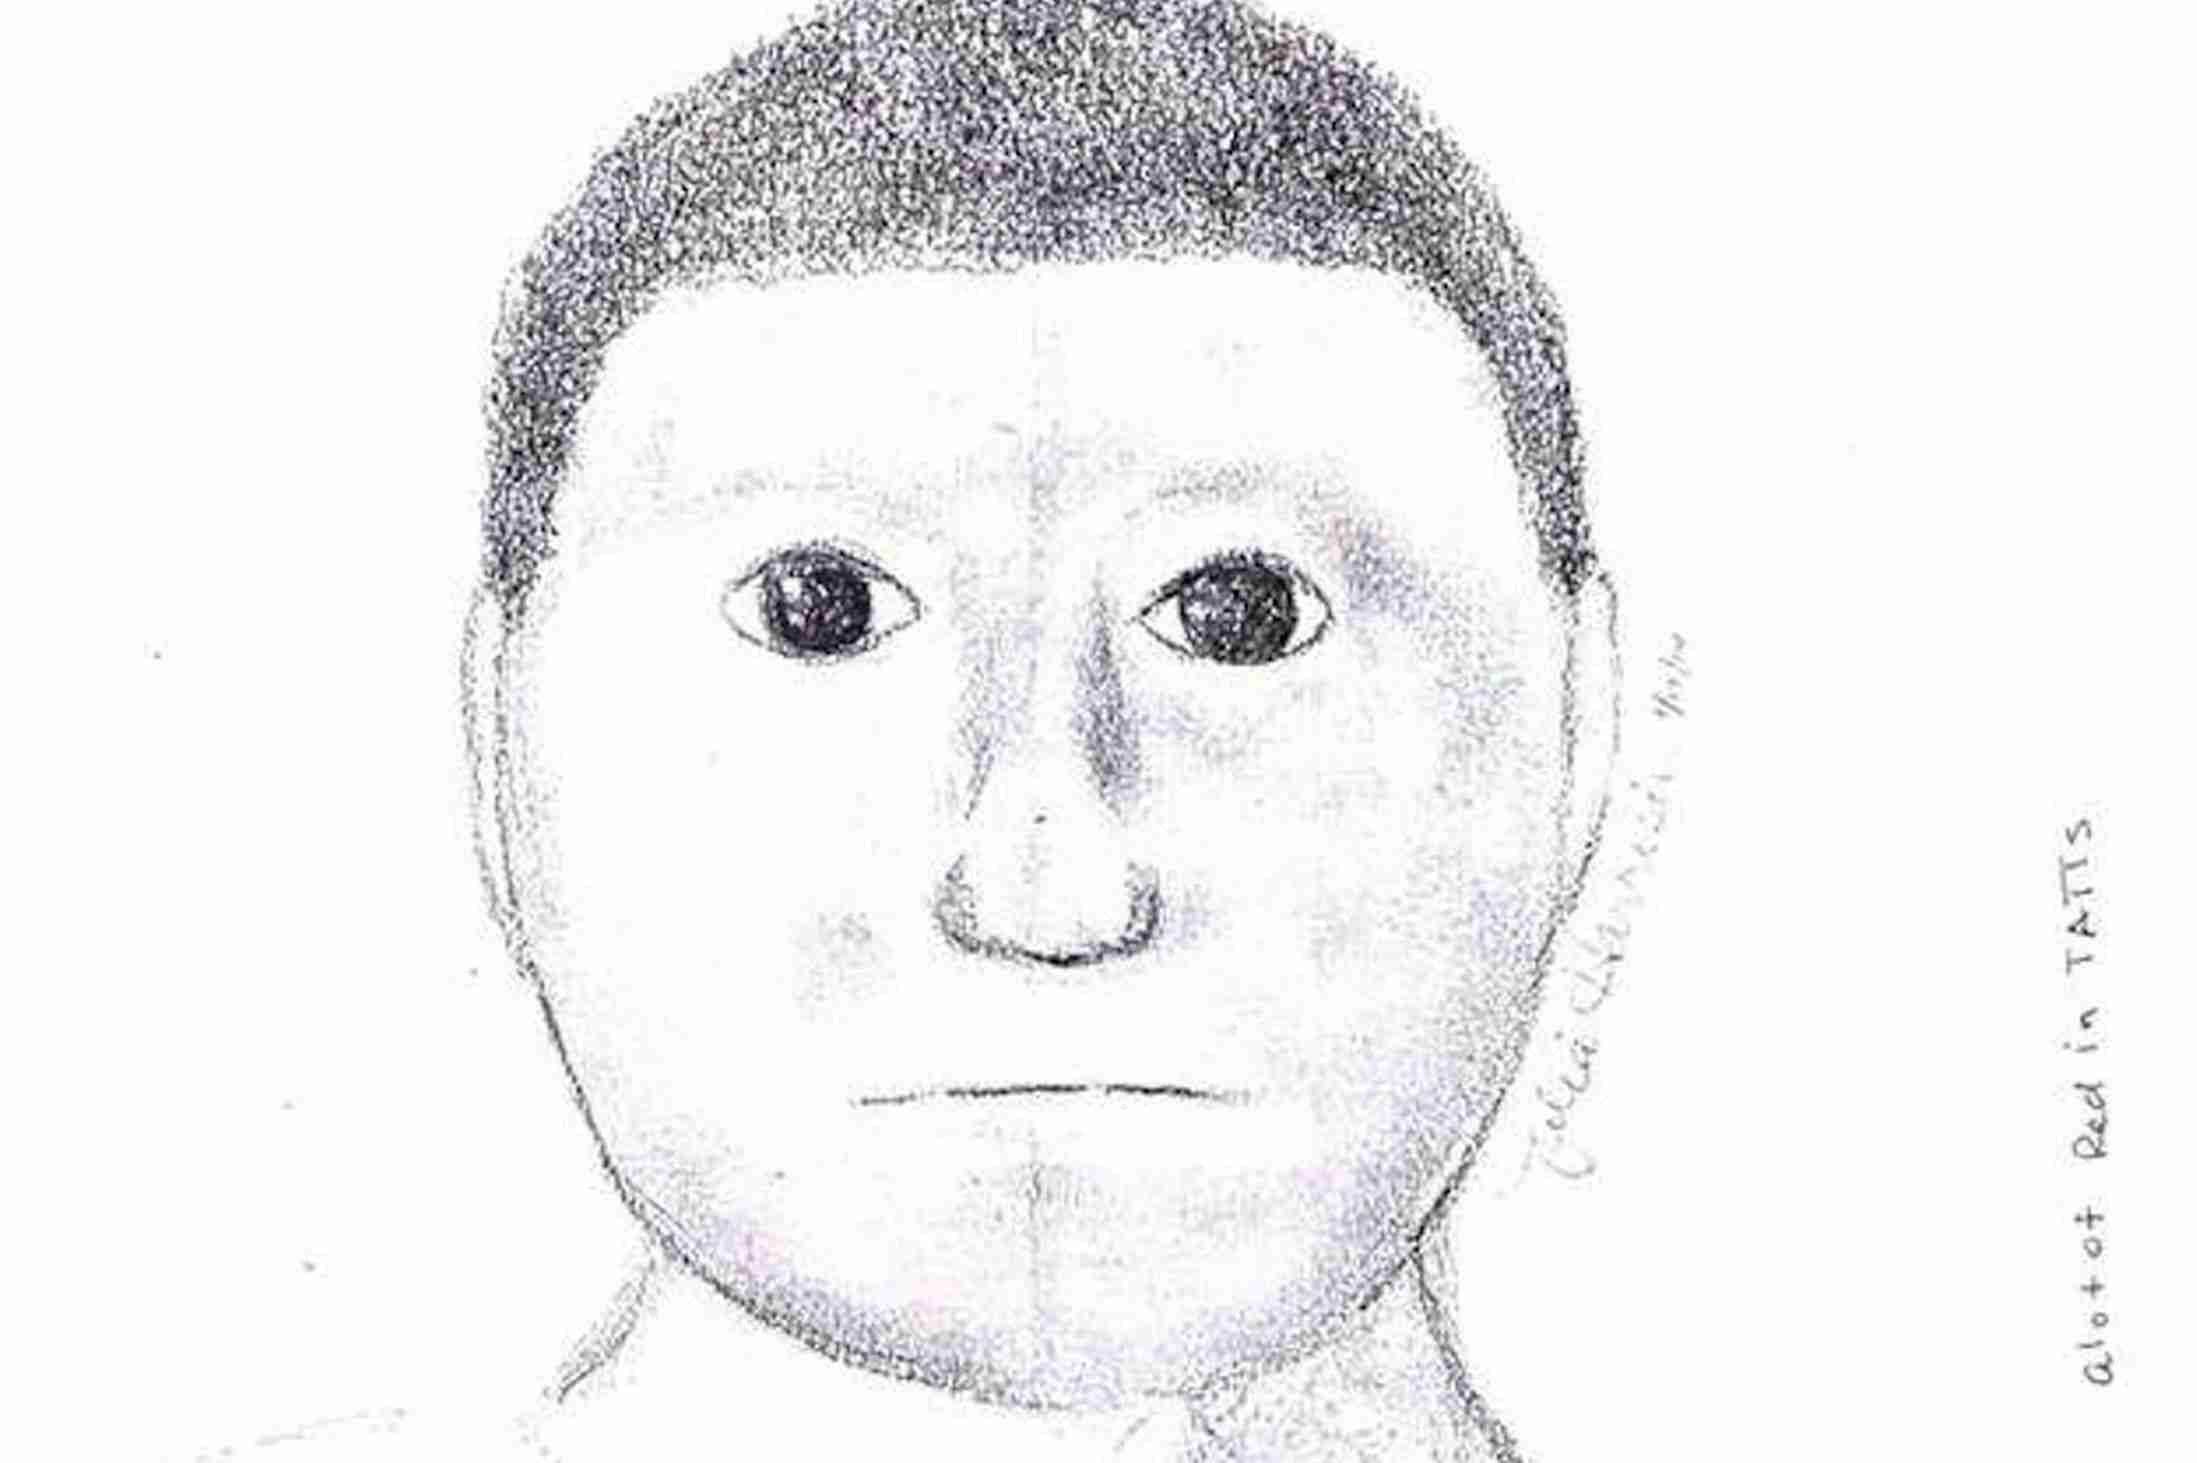 Is this the worst police e-fit ever? Cartoon-style sketch used to trace violent mugging suspect - Mirror Online